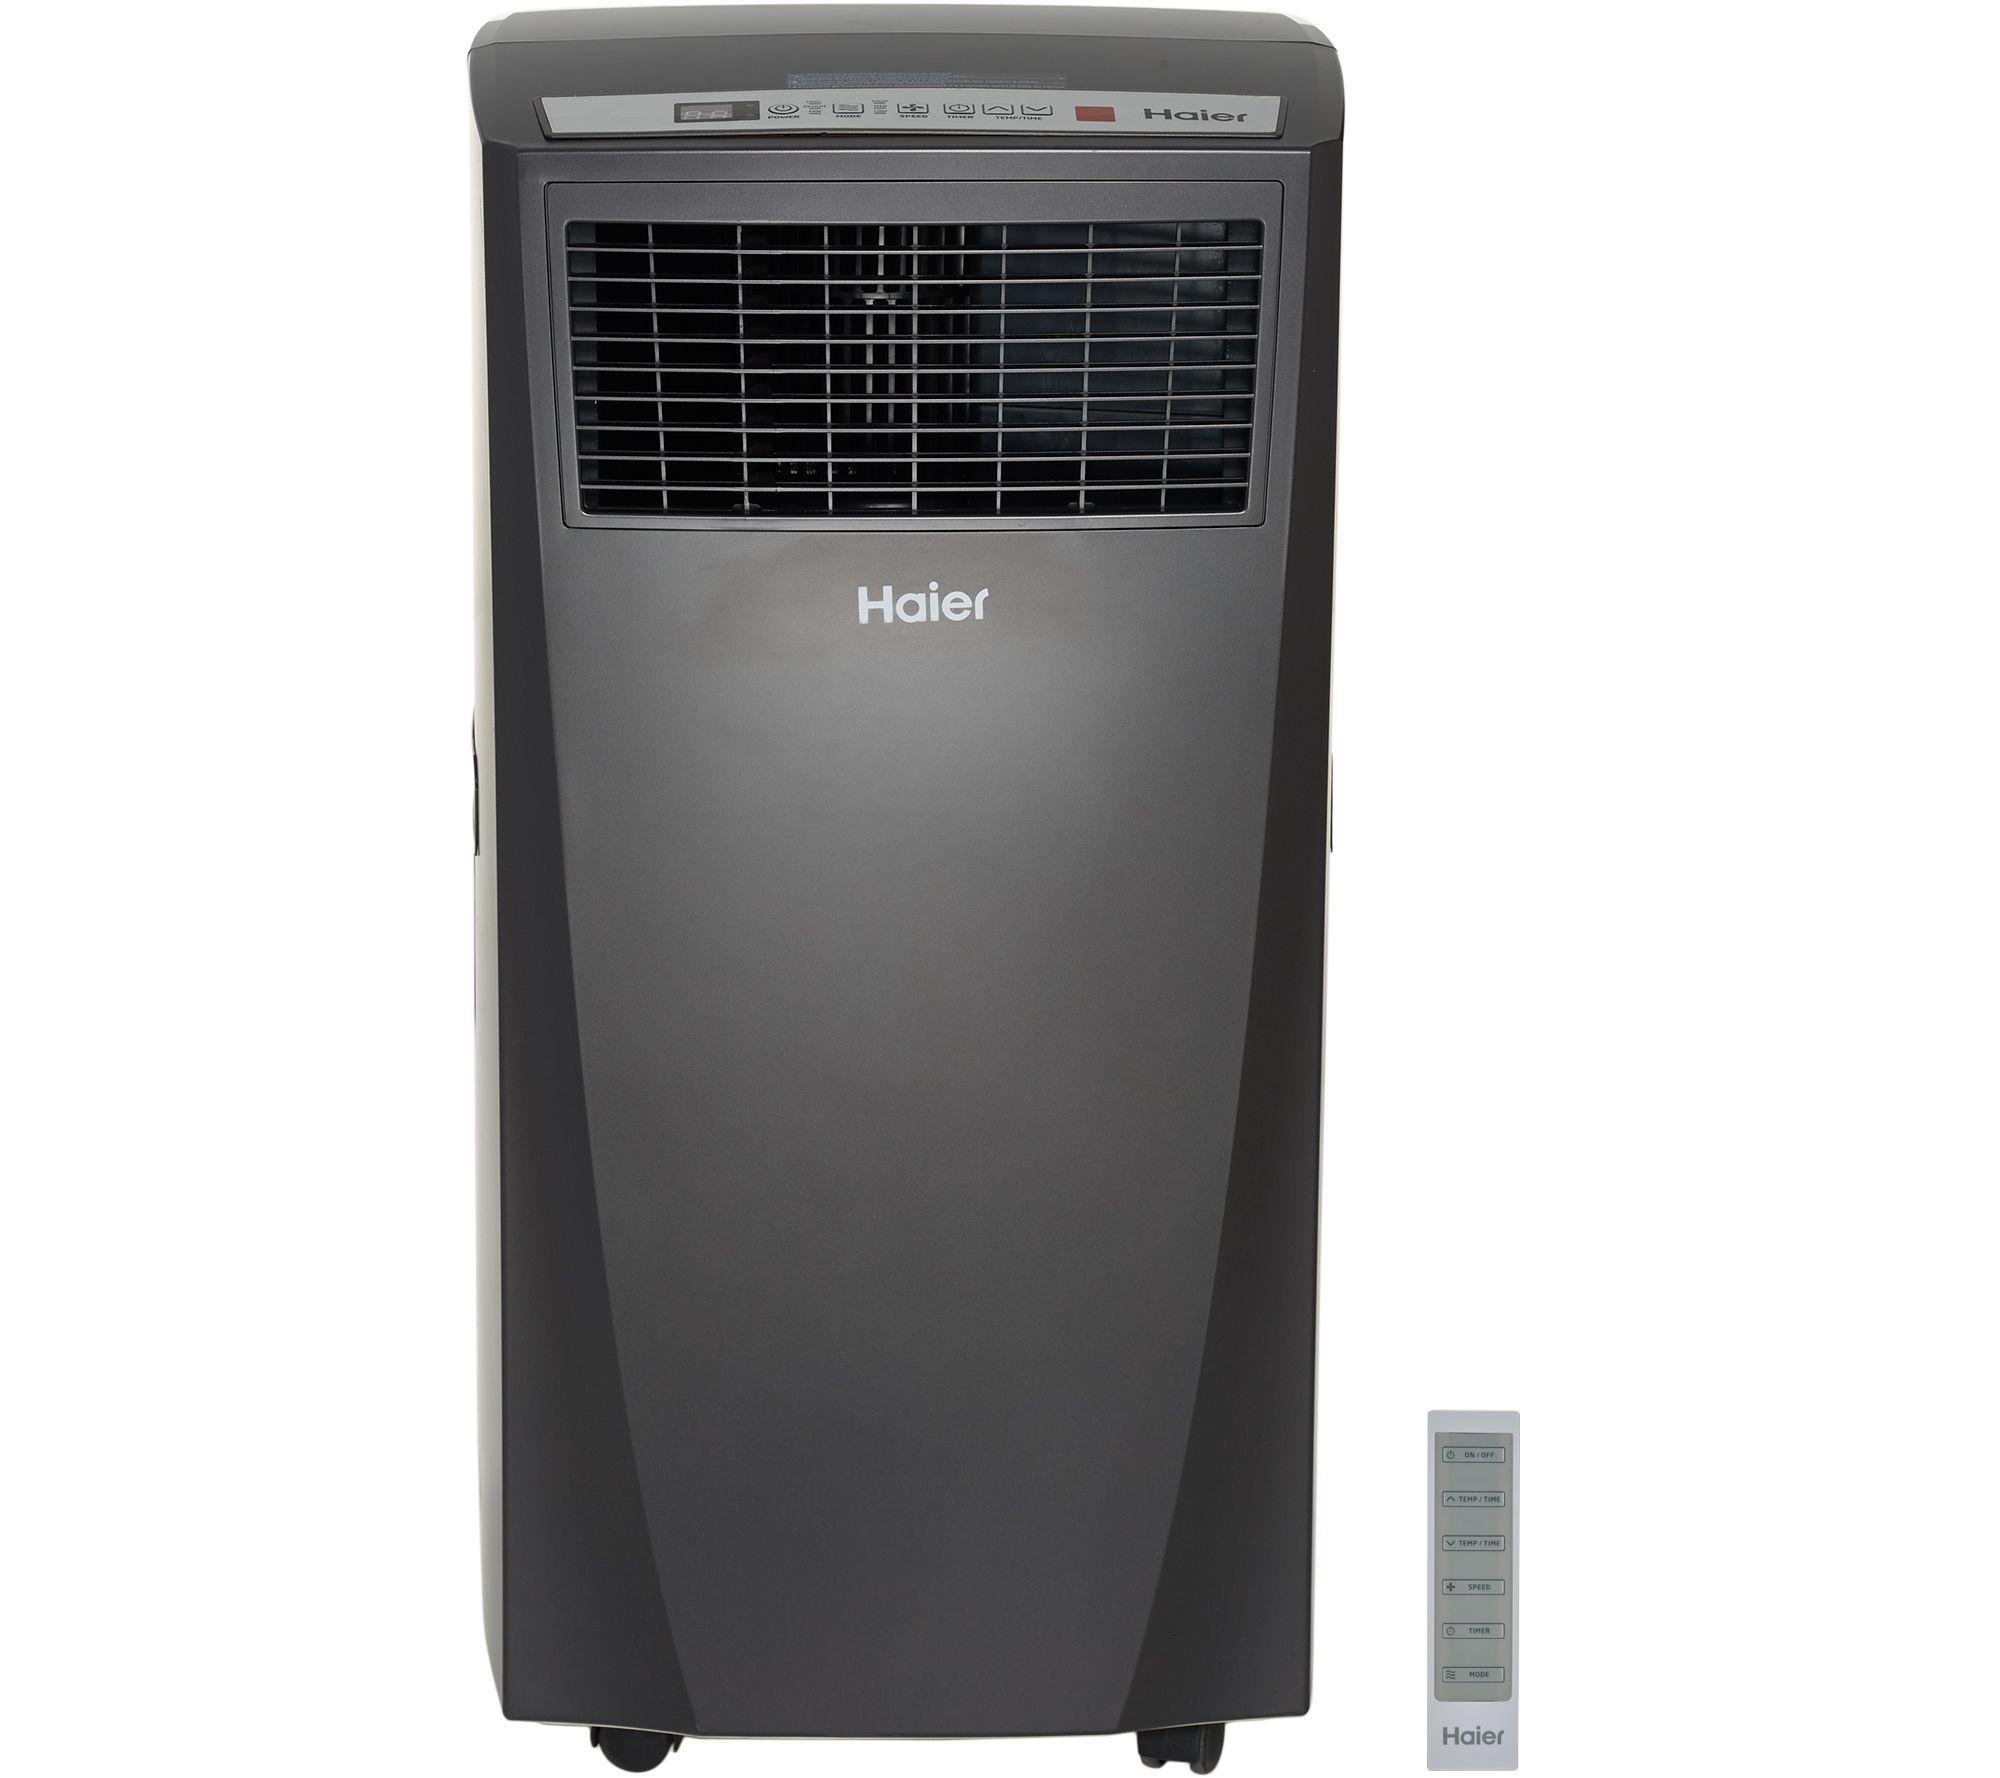 Haier 350sq ft Room Portable Air Conditioner with Remote